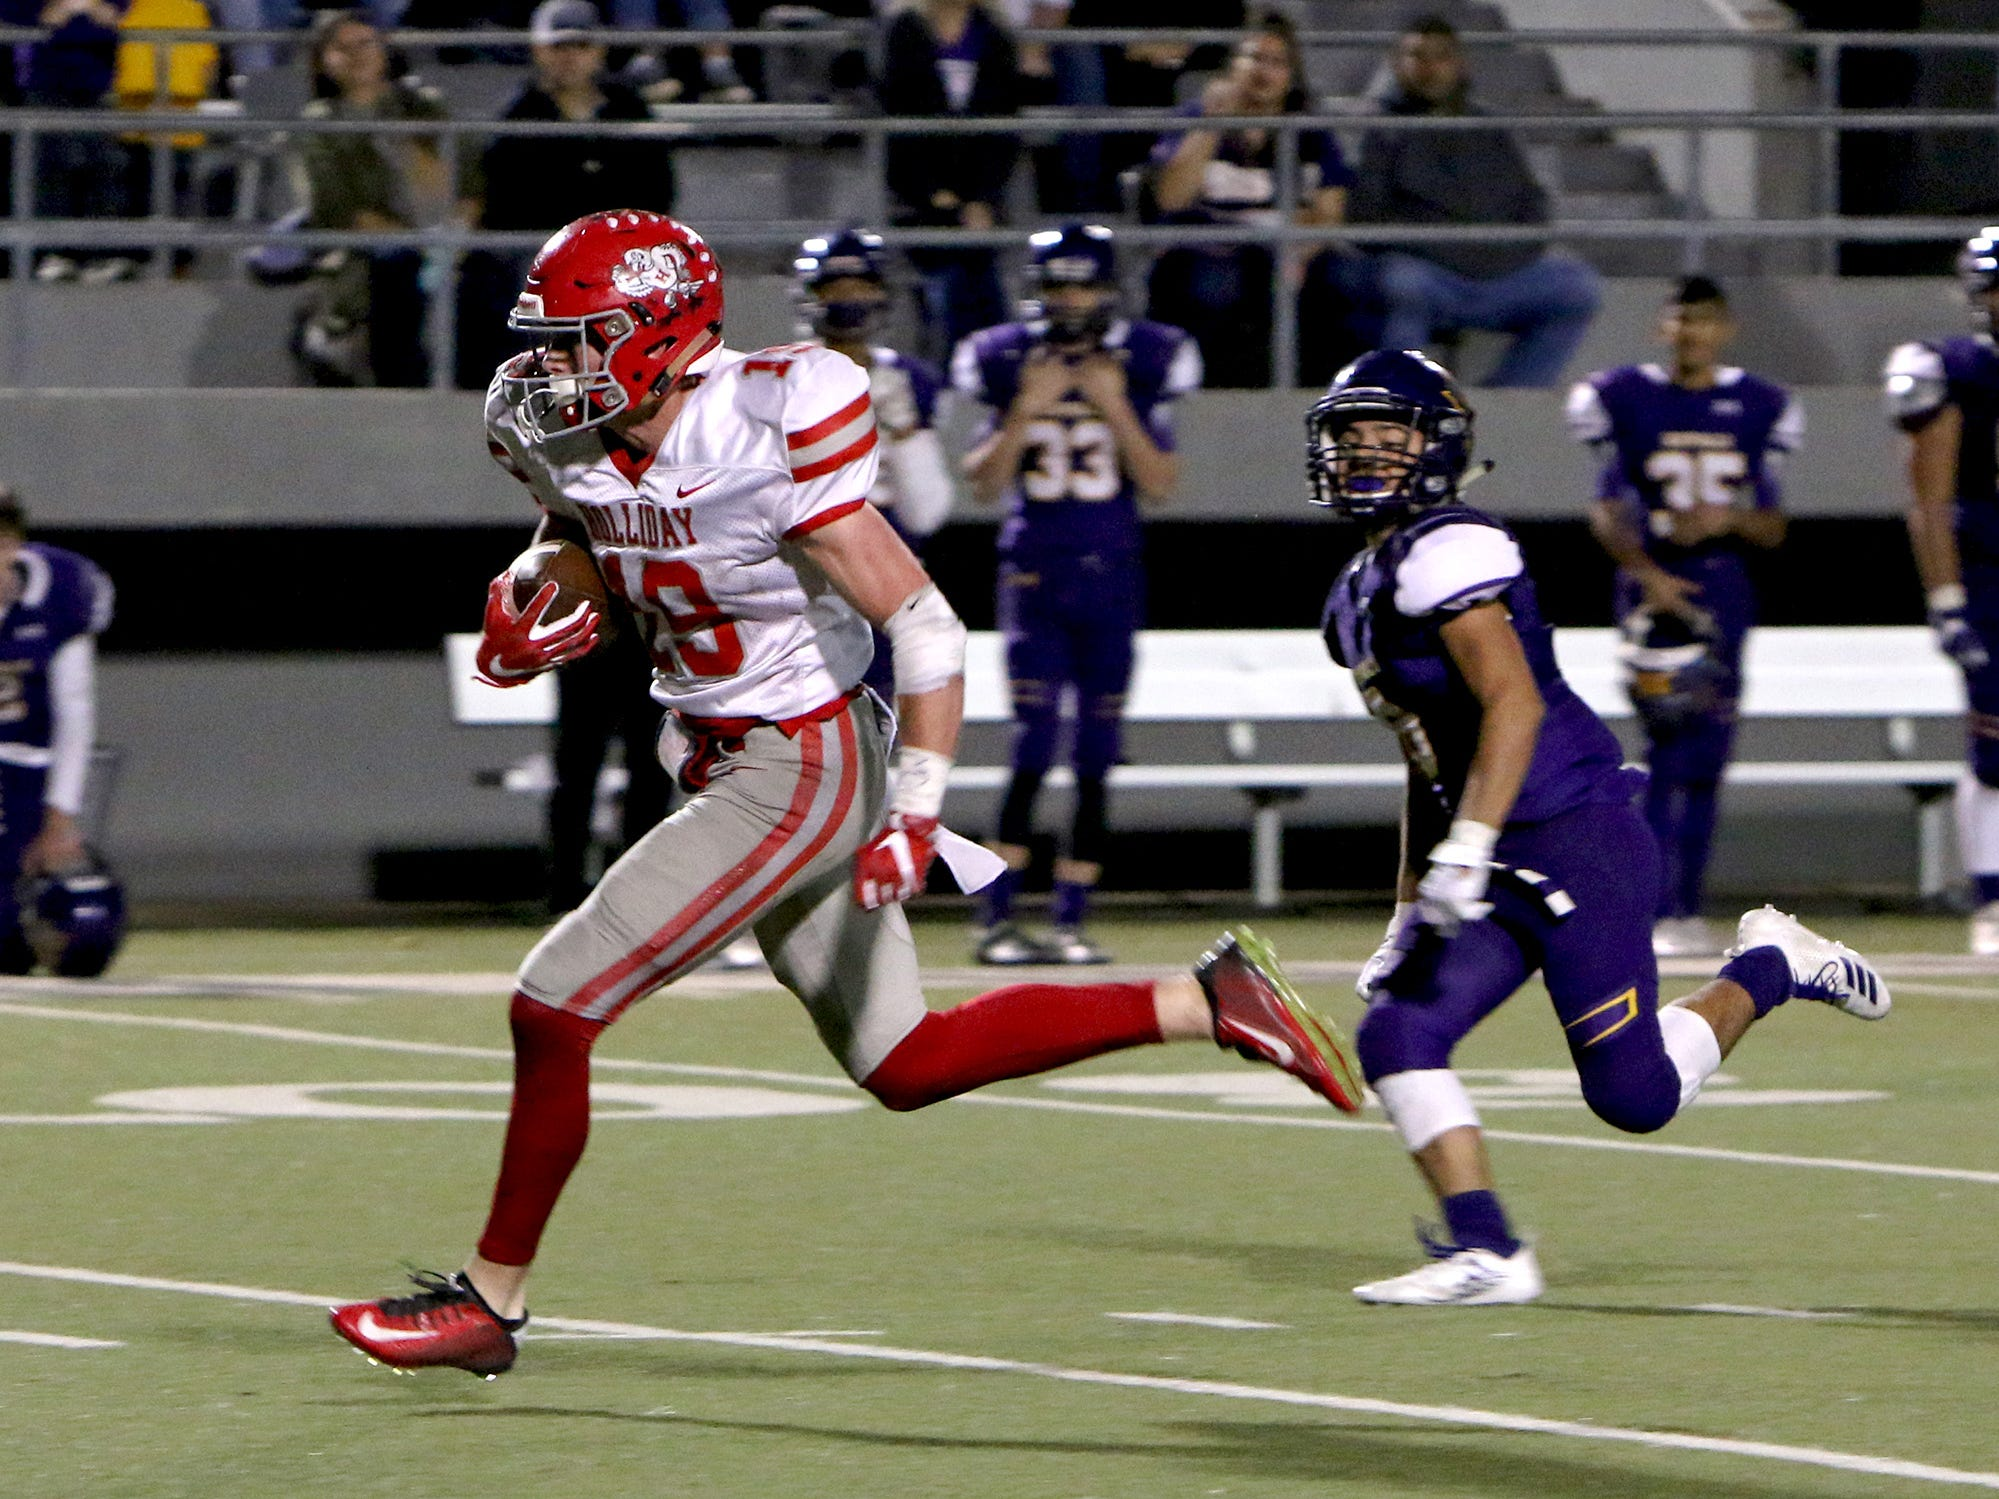 Holliday's Crue Jackson (19) scores a touchdown on a catch against Buffalo in the Region II-3A Div. II regional game Friday, Nov. 30, 2018, at Birdville ISD Athletics Complex in North Richland Hills.